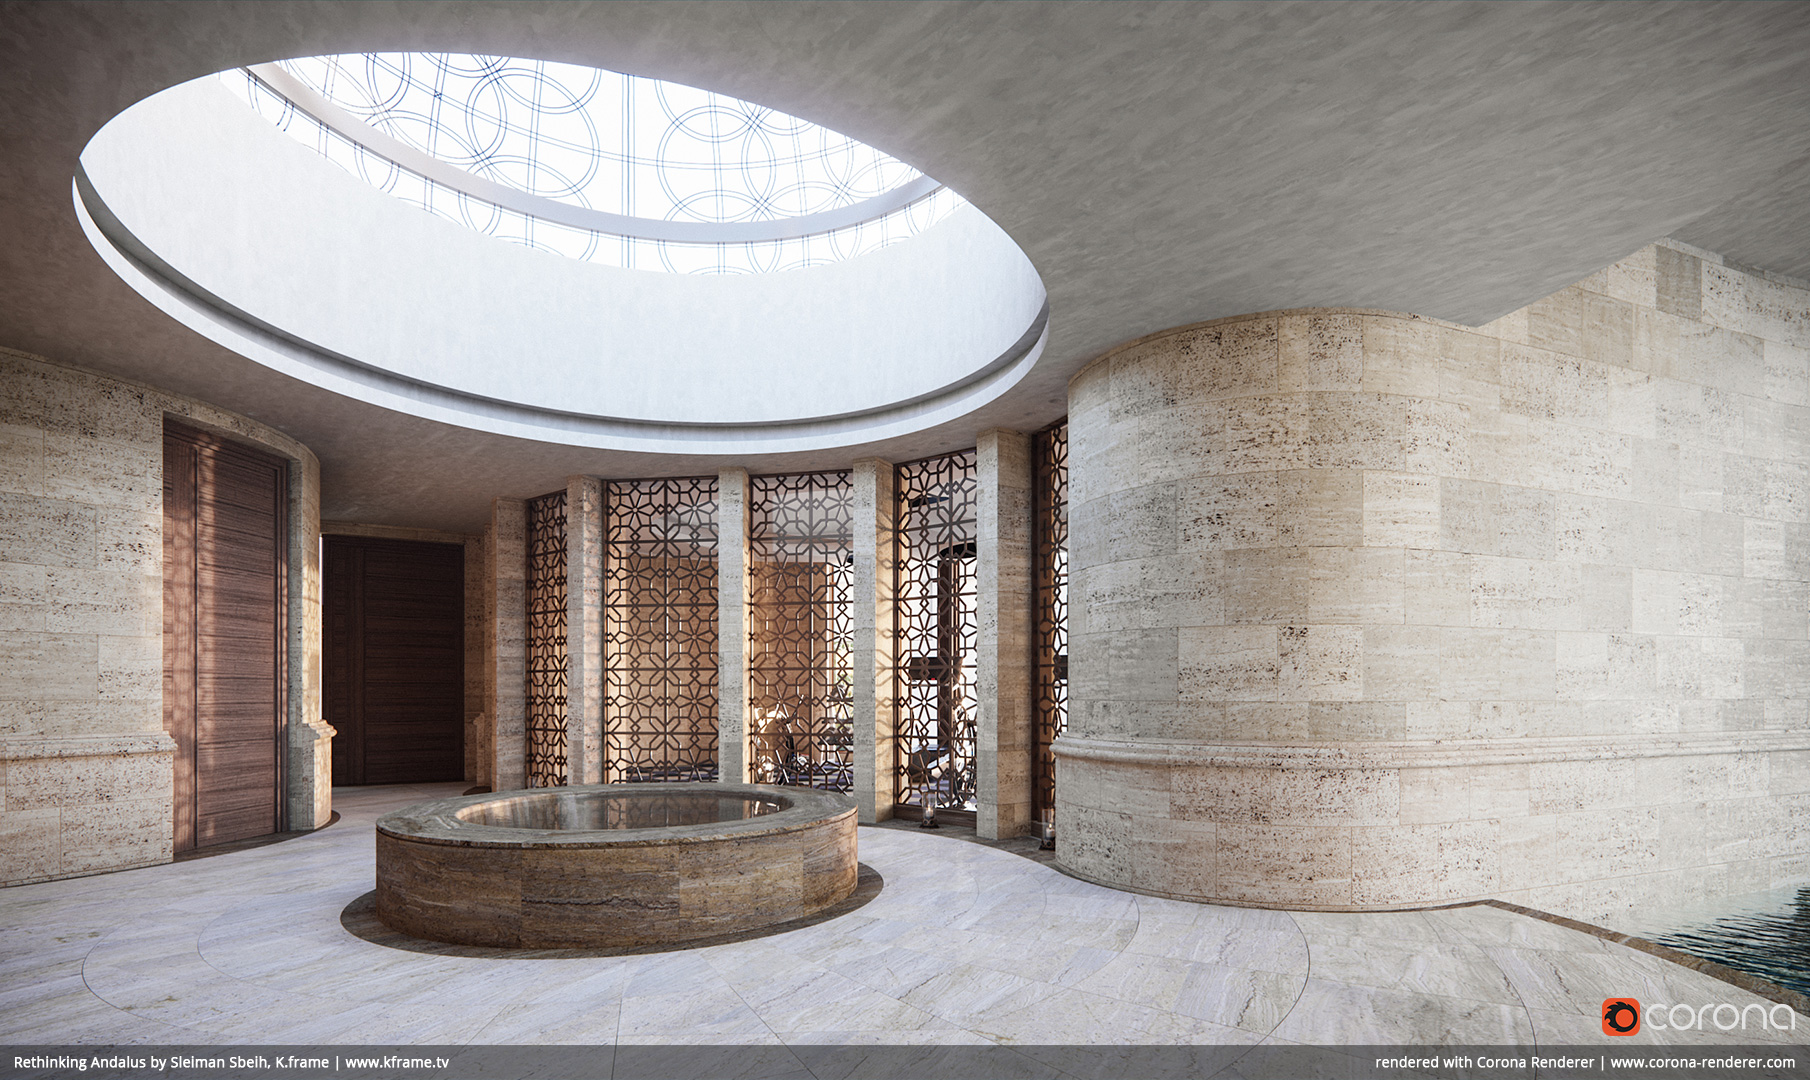 Rethinking Andalus, Spa by Sleiman Sbeih, K.frame